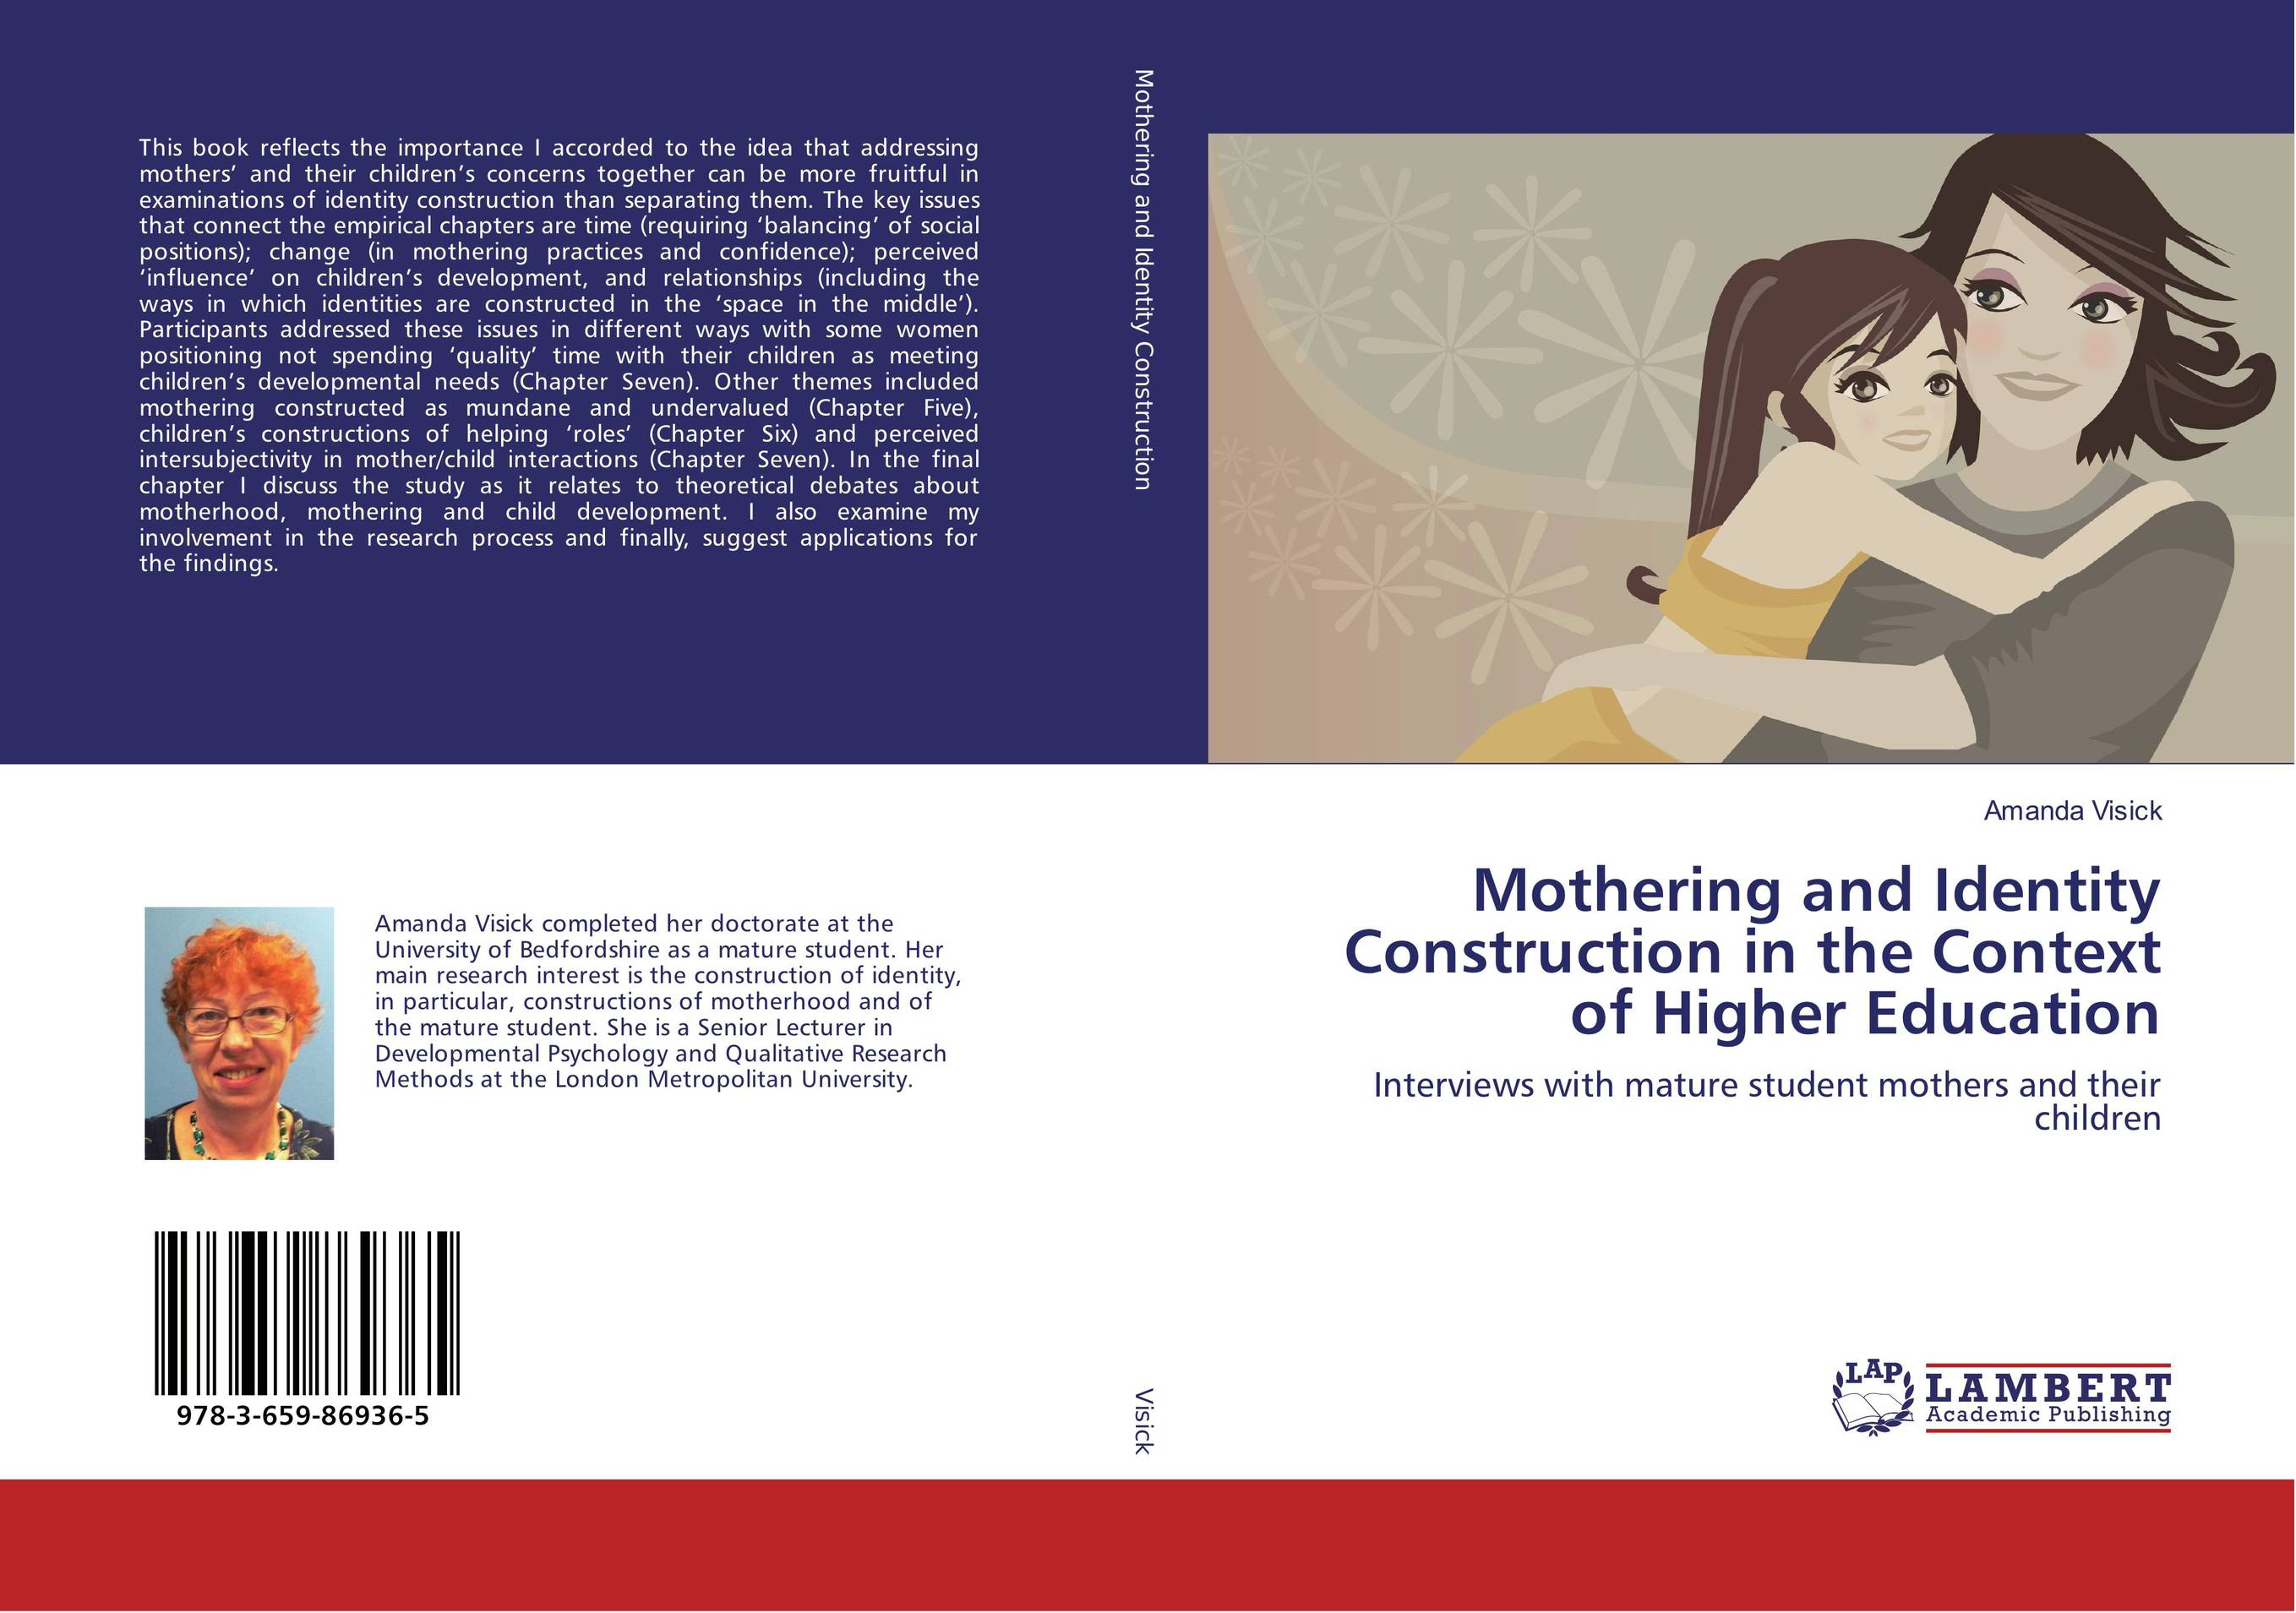 Mothering and Identity Construction in the Context of Higher Education the salmon who dared to leap higher